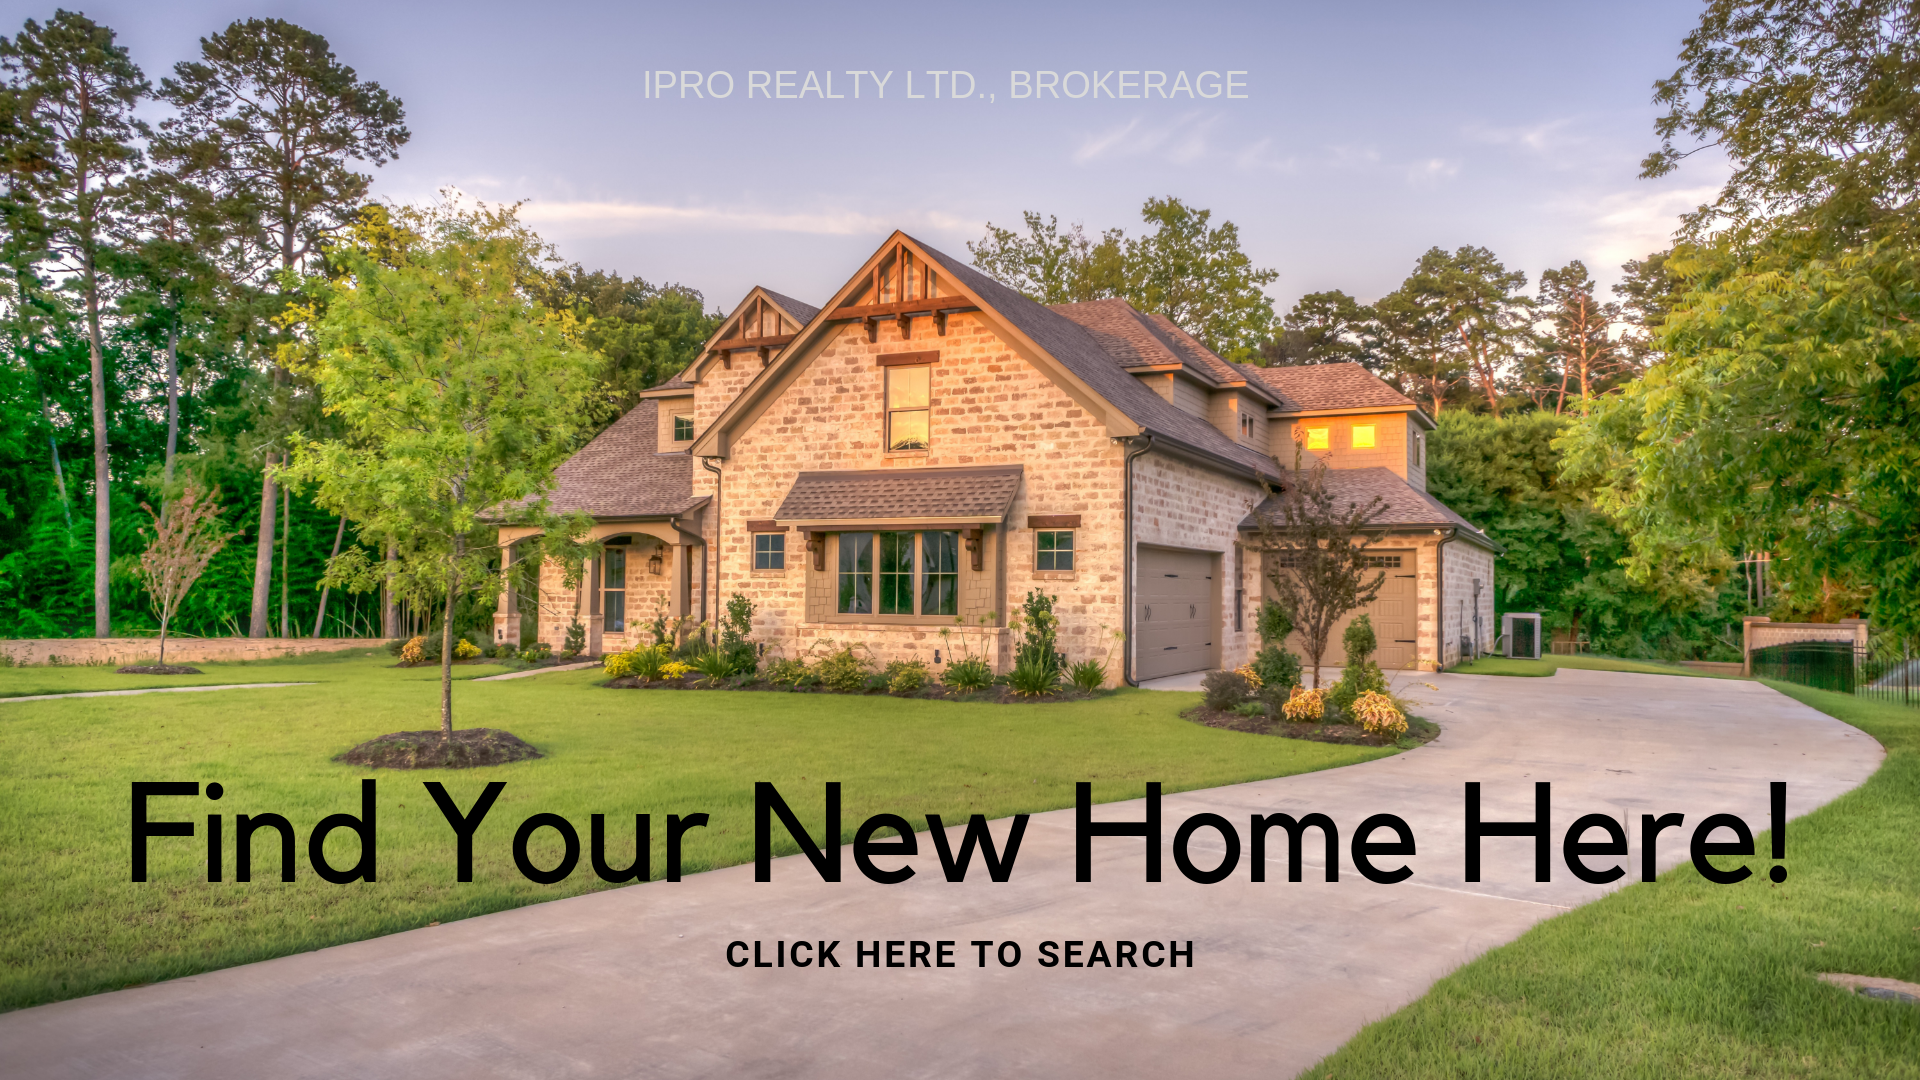 Search Homes For Sale Image.png